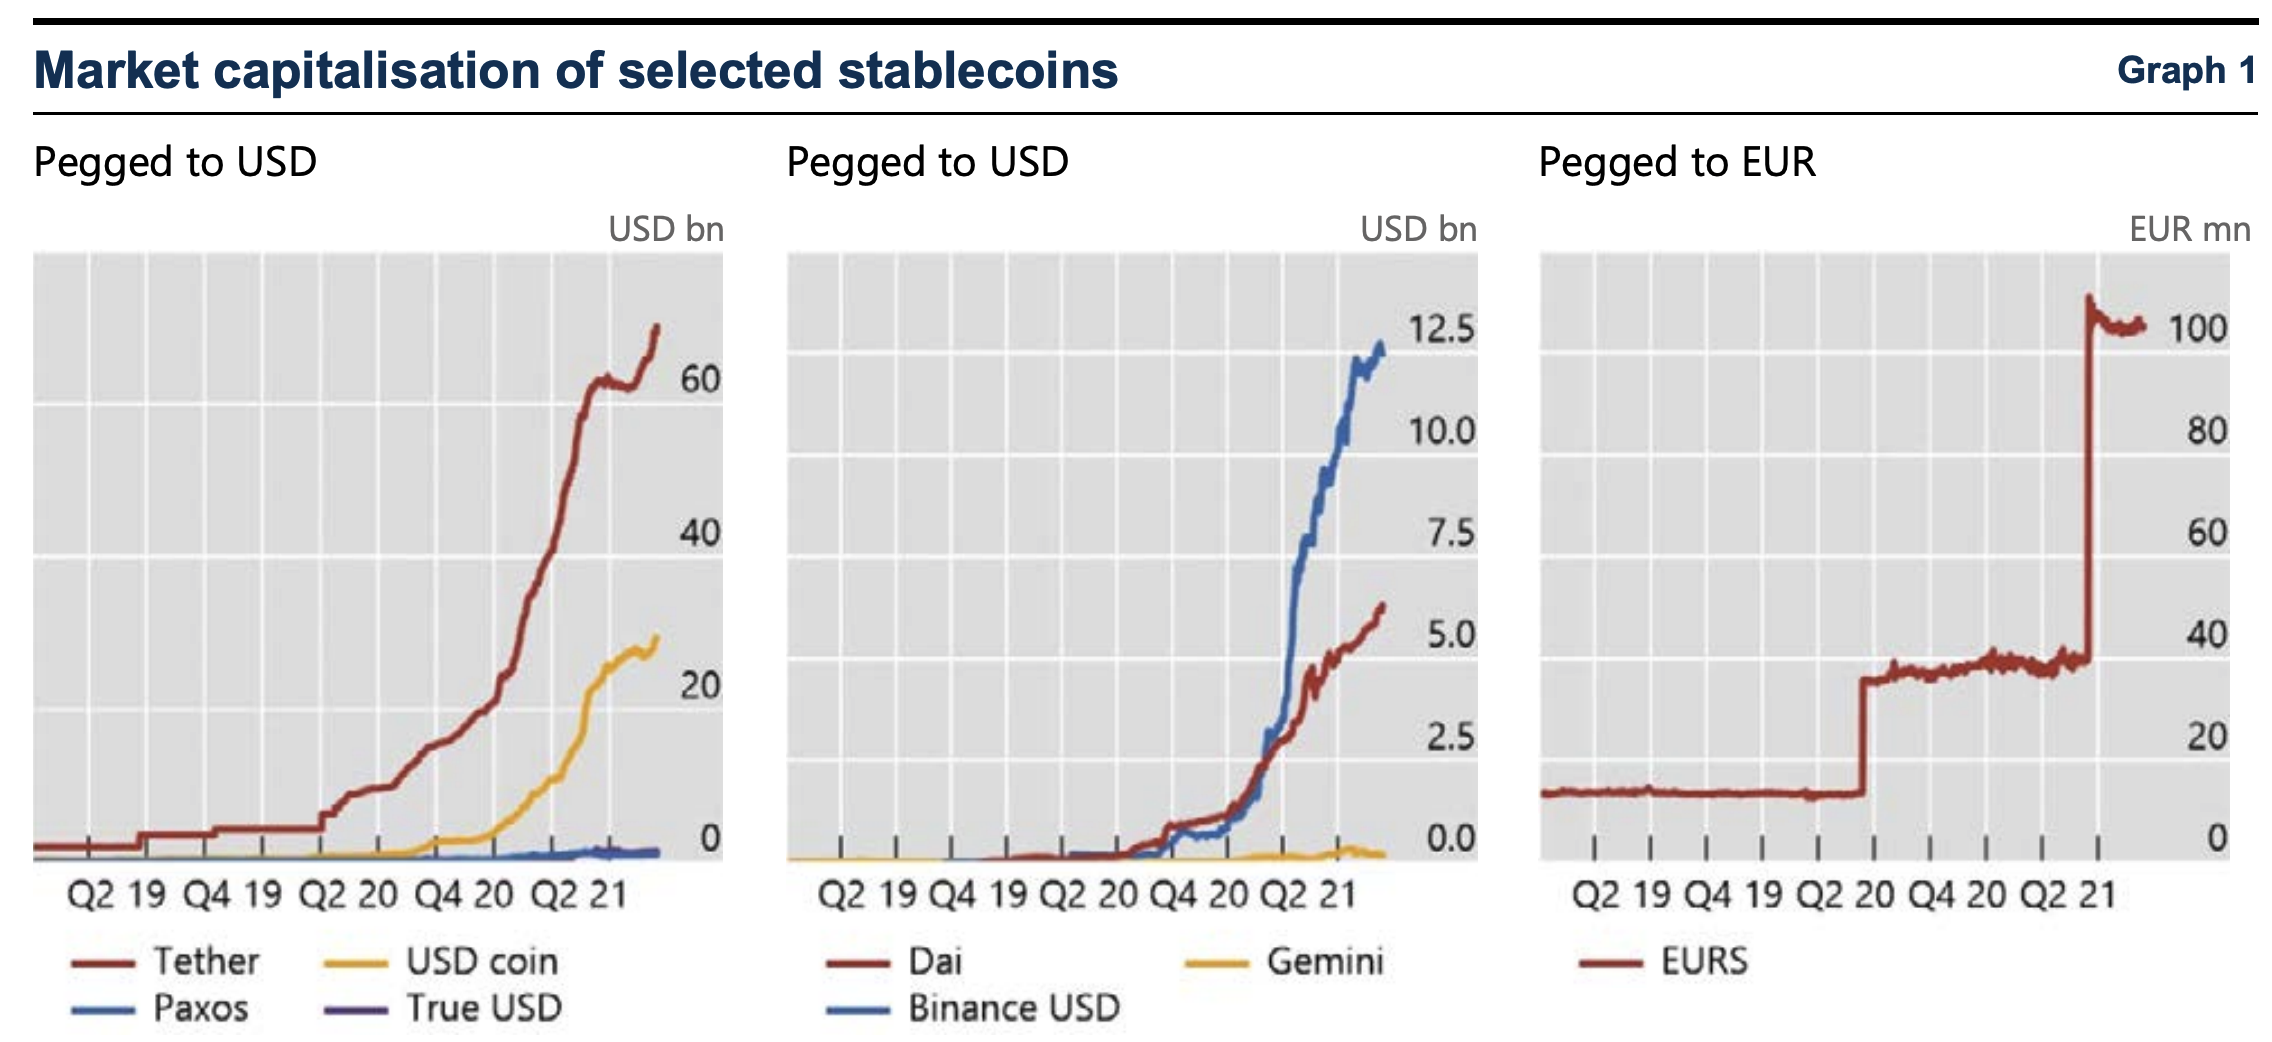 Countries Should Prevent 'Regulatory Arbitrage' for Stablecoins – FSB